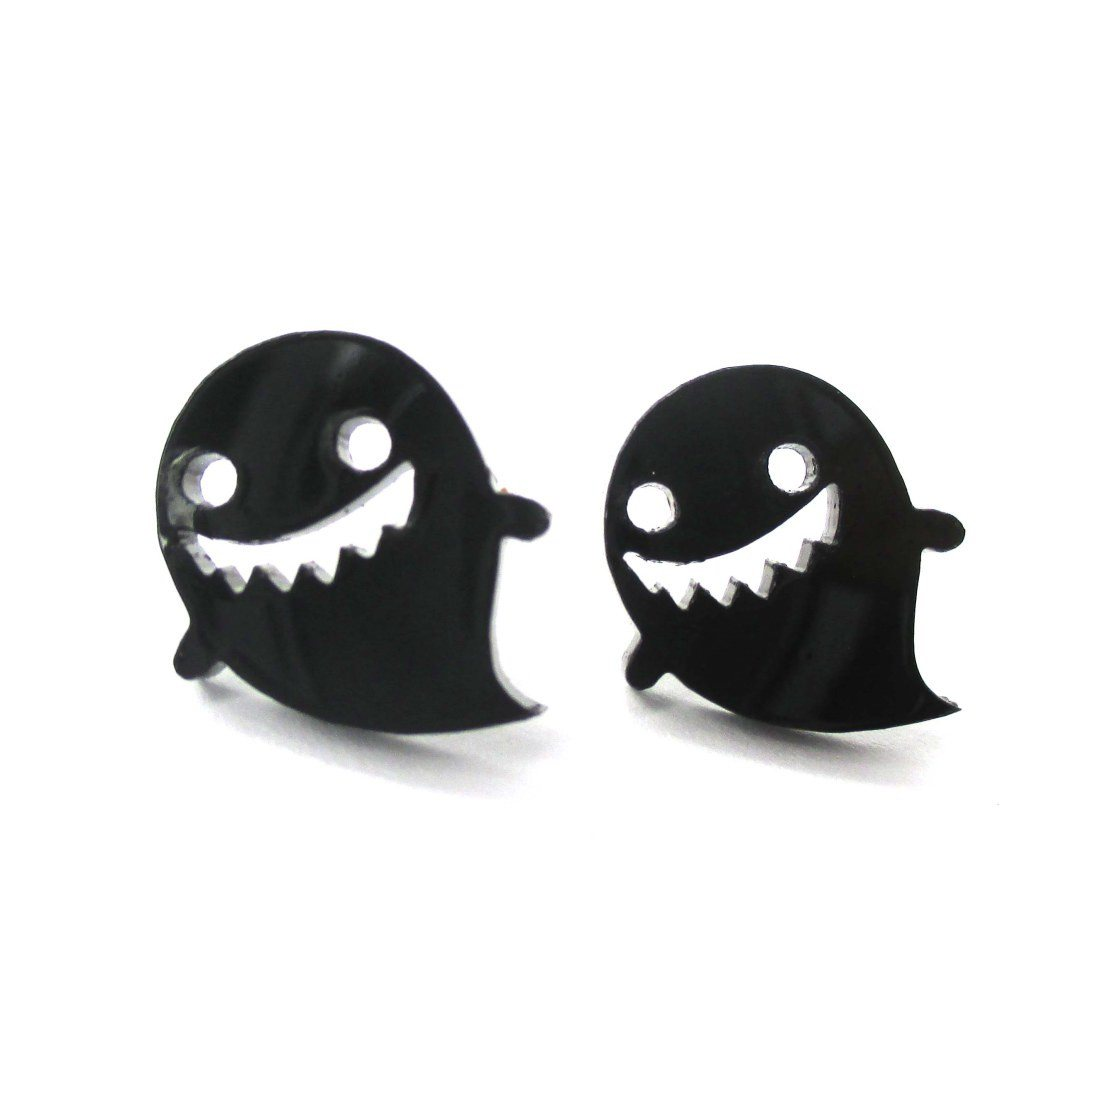 Adorable Laser Cut Black Acrylic Ghost Shaped Statement Stud Earrings